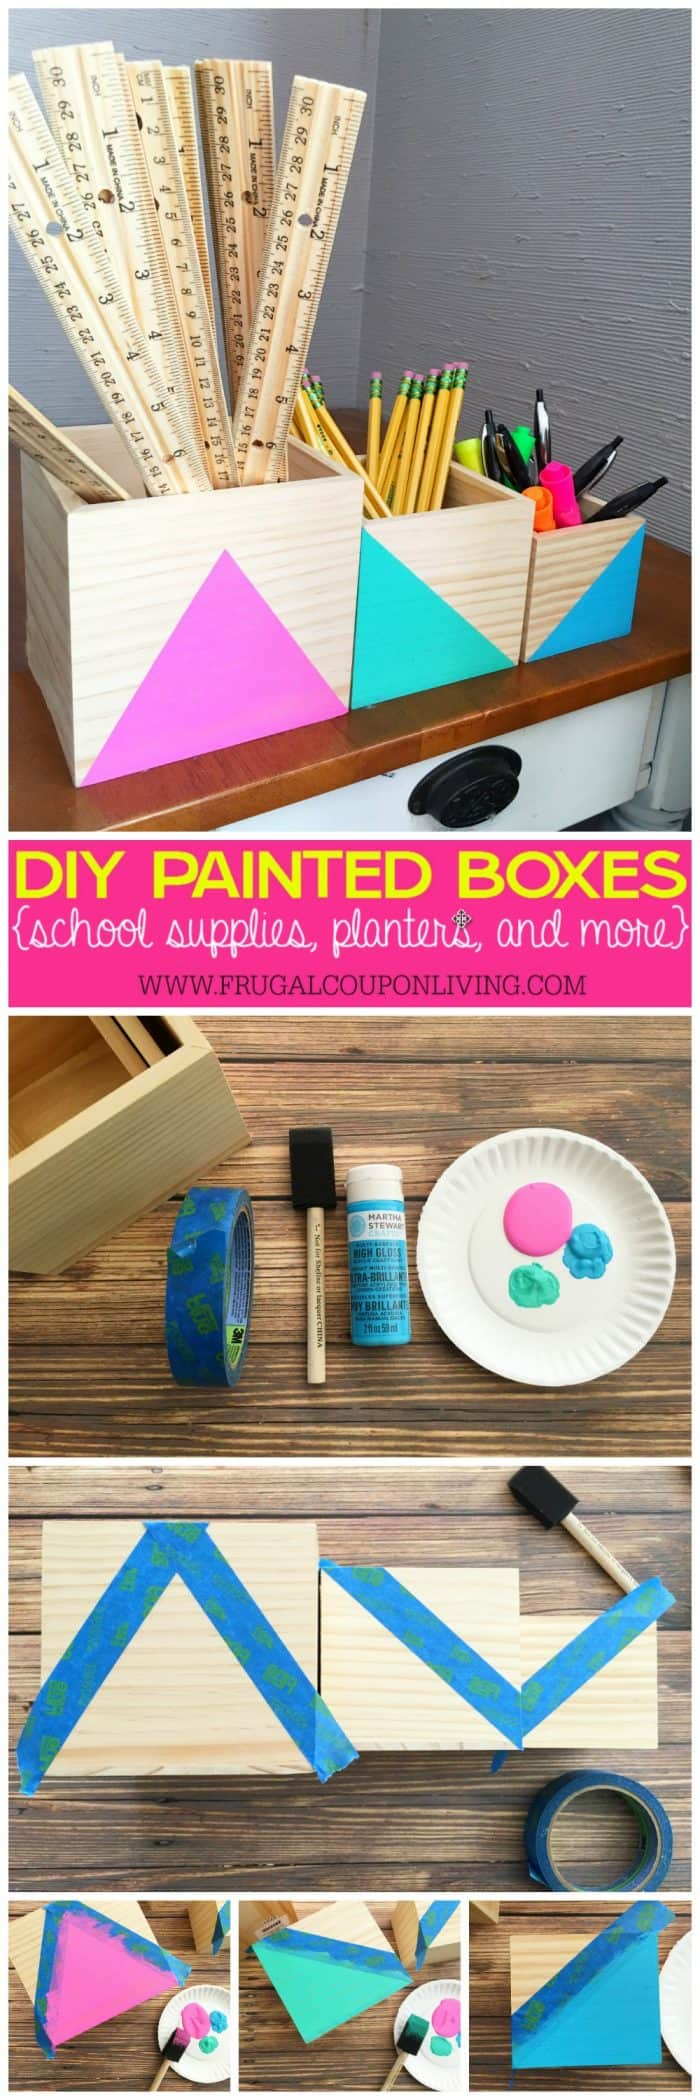 DIY-Painted-Boxes-frugal-coupon-living-long